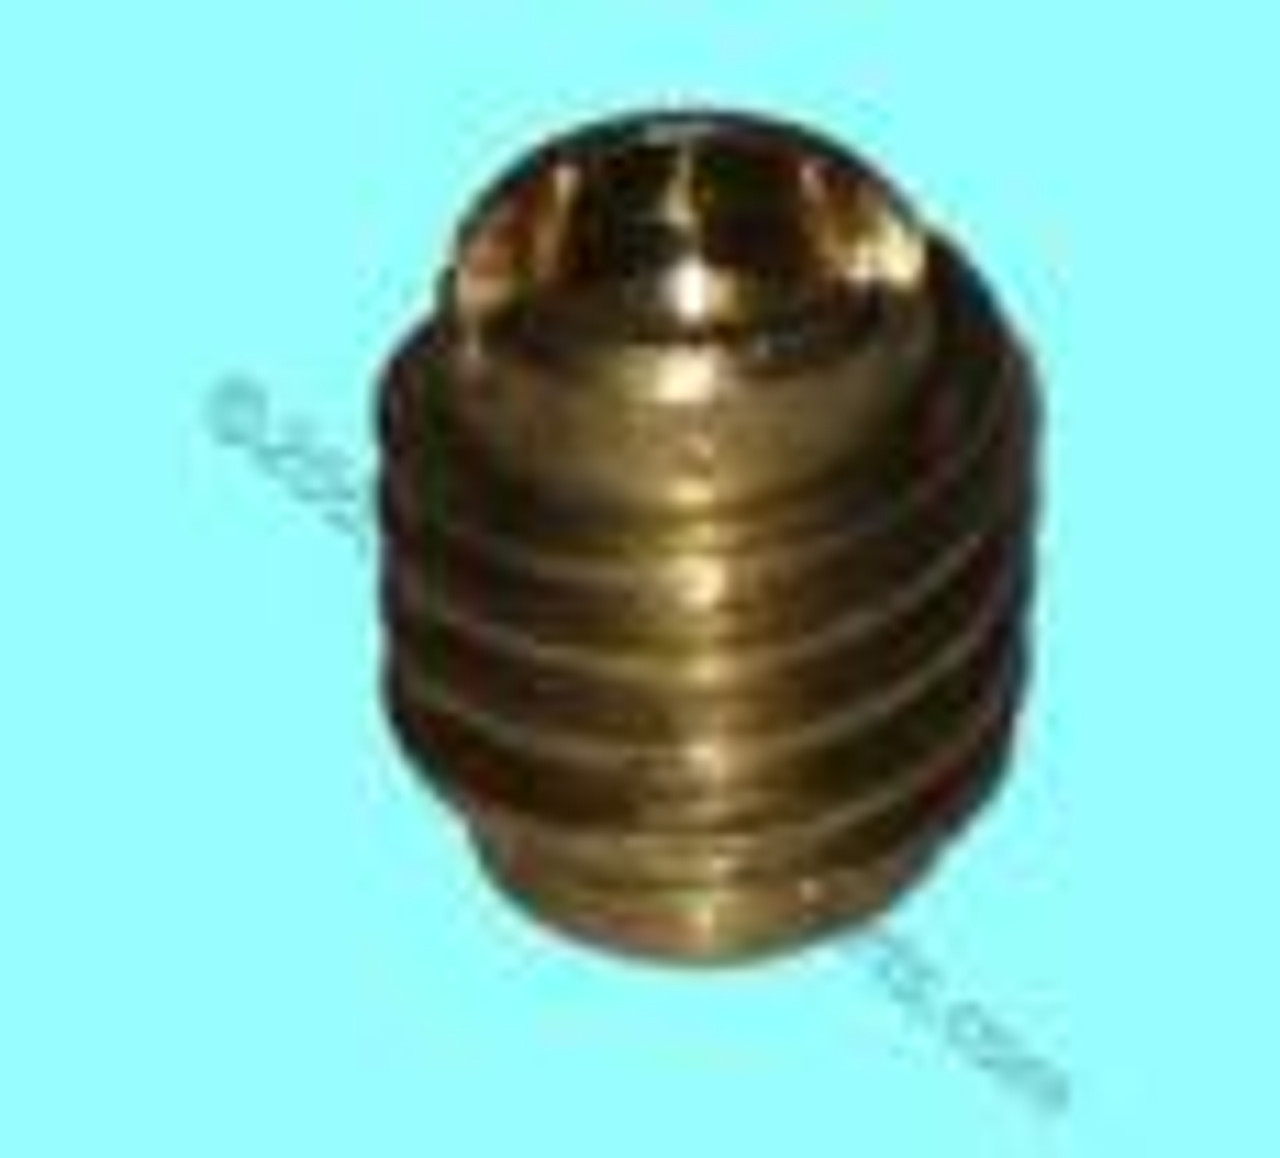 1/4-28 Brass Threaded Insert